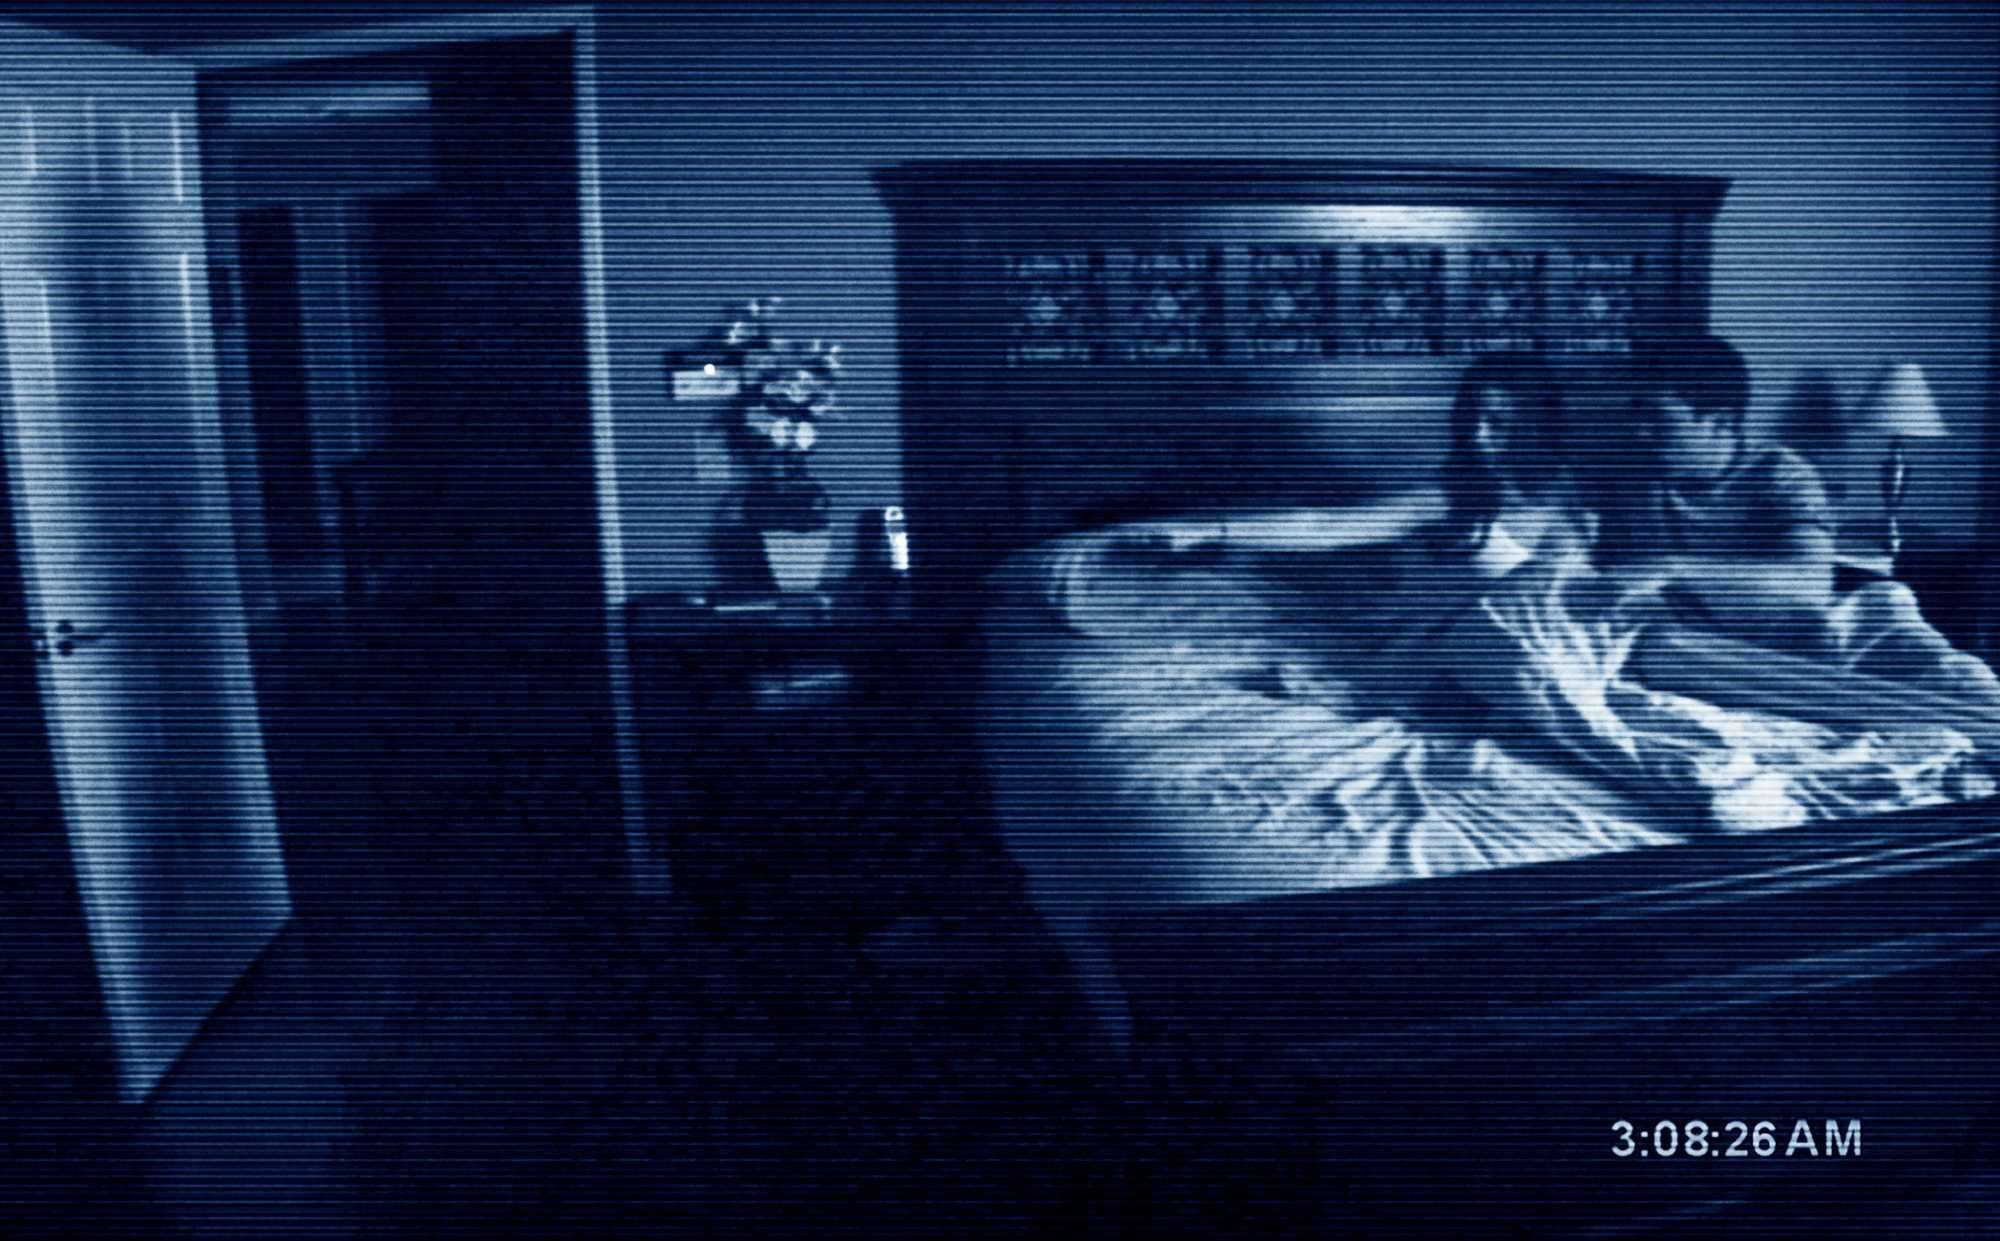 Paranormal Activity Director Shares Original Audition Tapes